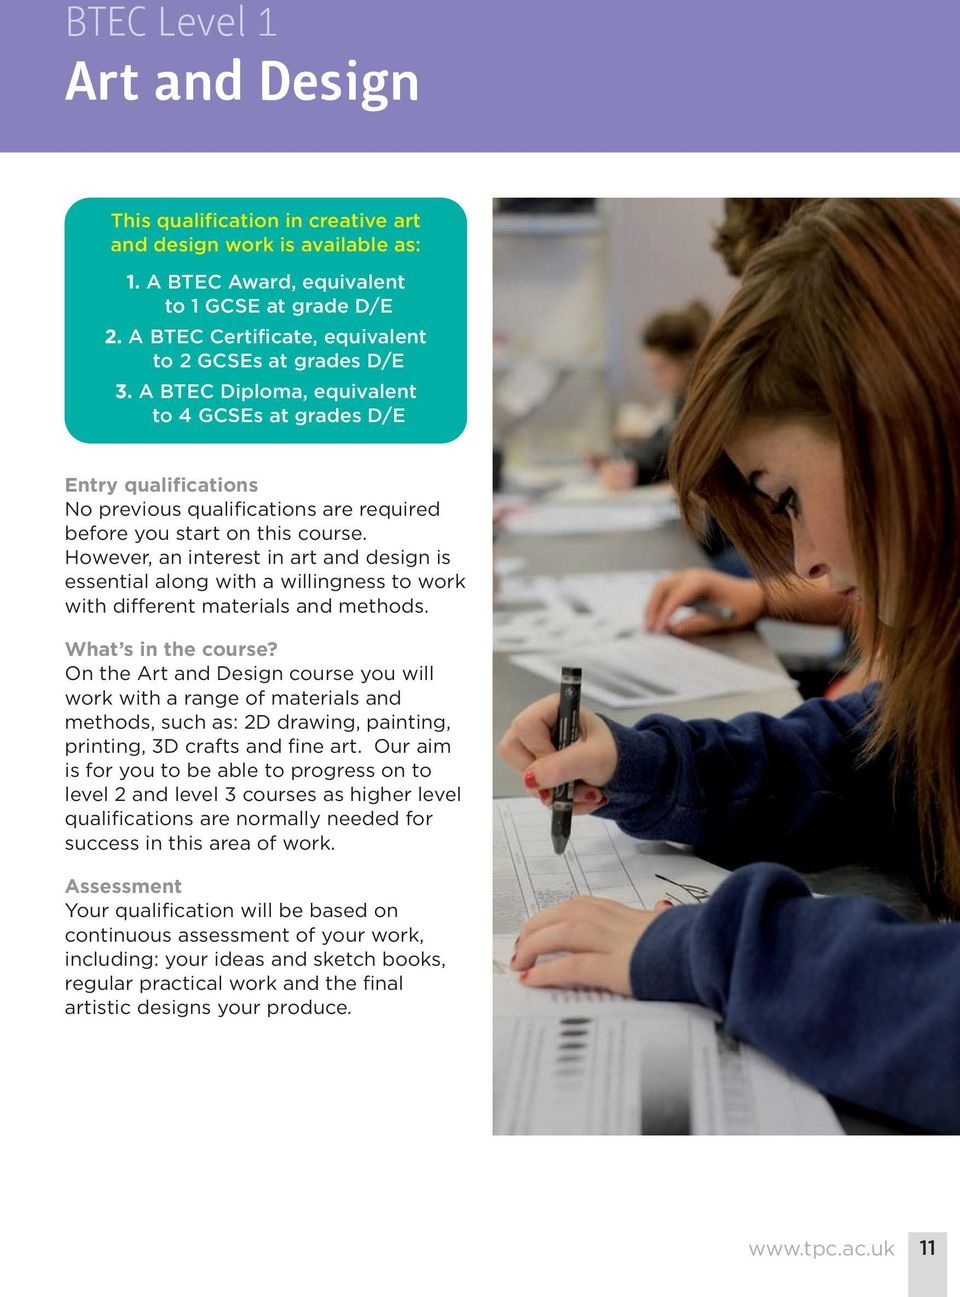 A BTEC Diploma, equivalent to 4 GCSEs at grades D/E Entry qualifications No previous qualifications are required before you start on this course.